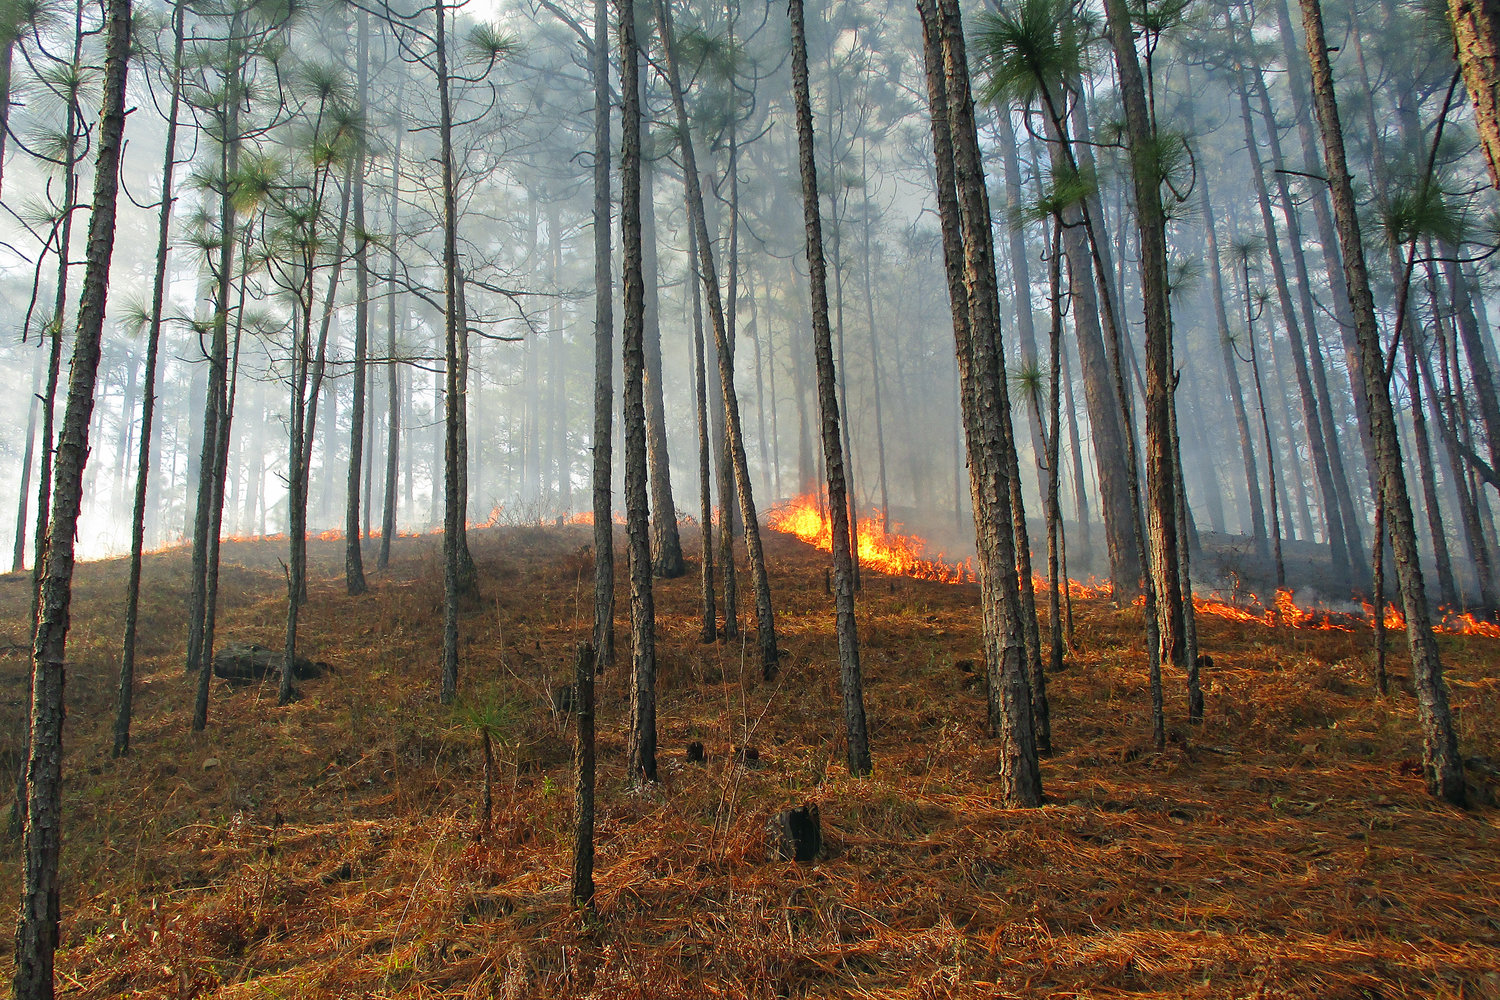 A prescribed fire moves through a pine plantation to eliminate excess fuel in the understory.